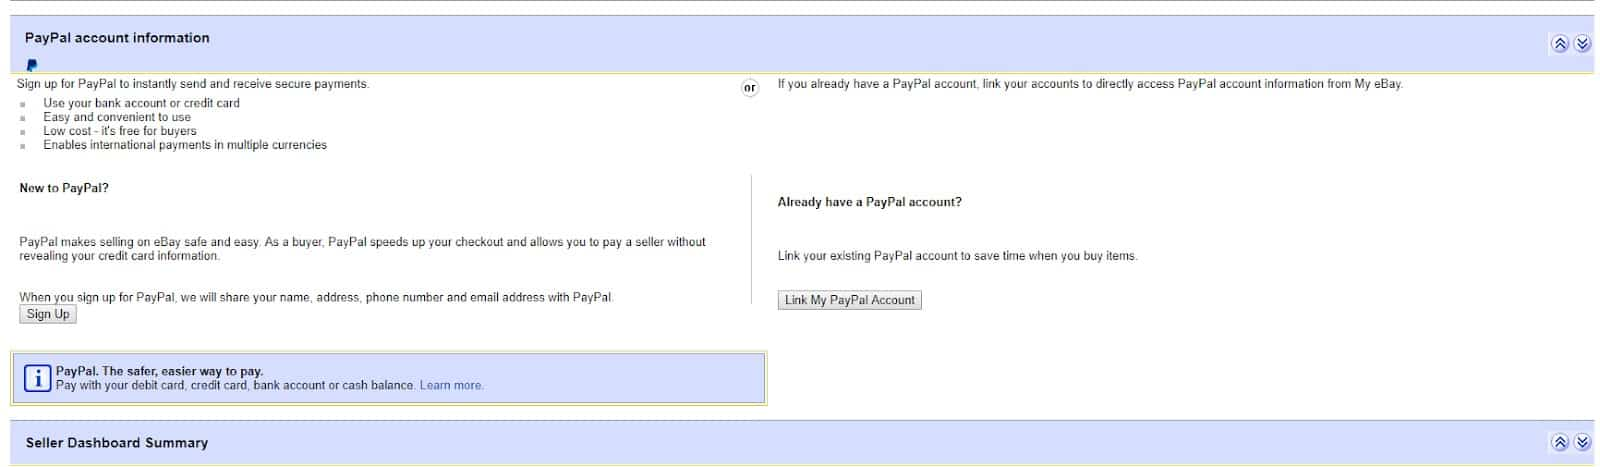 How To Connect Paypal To Ebay Account